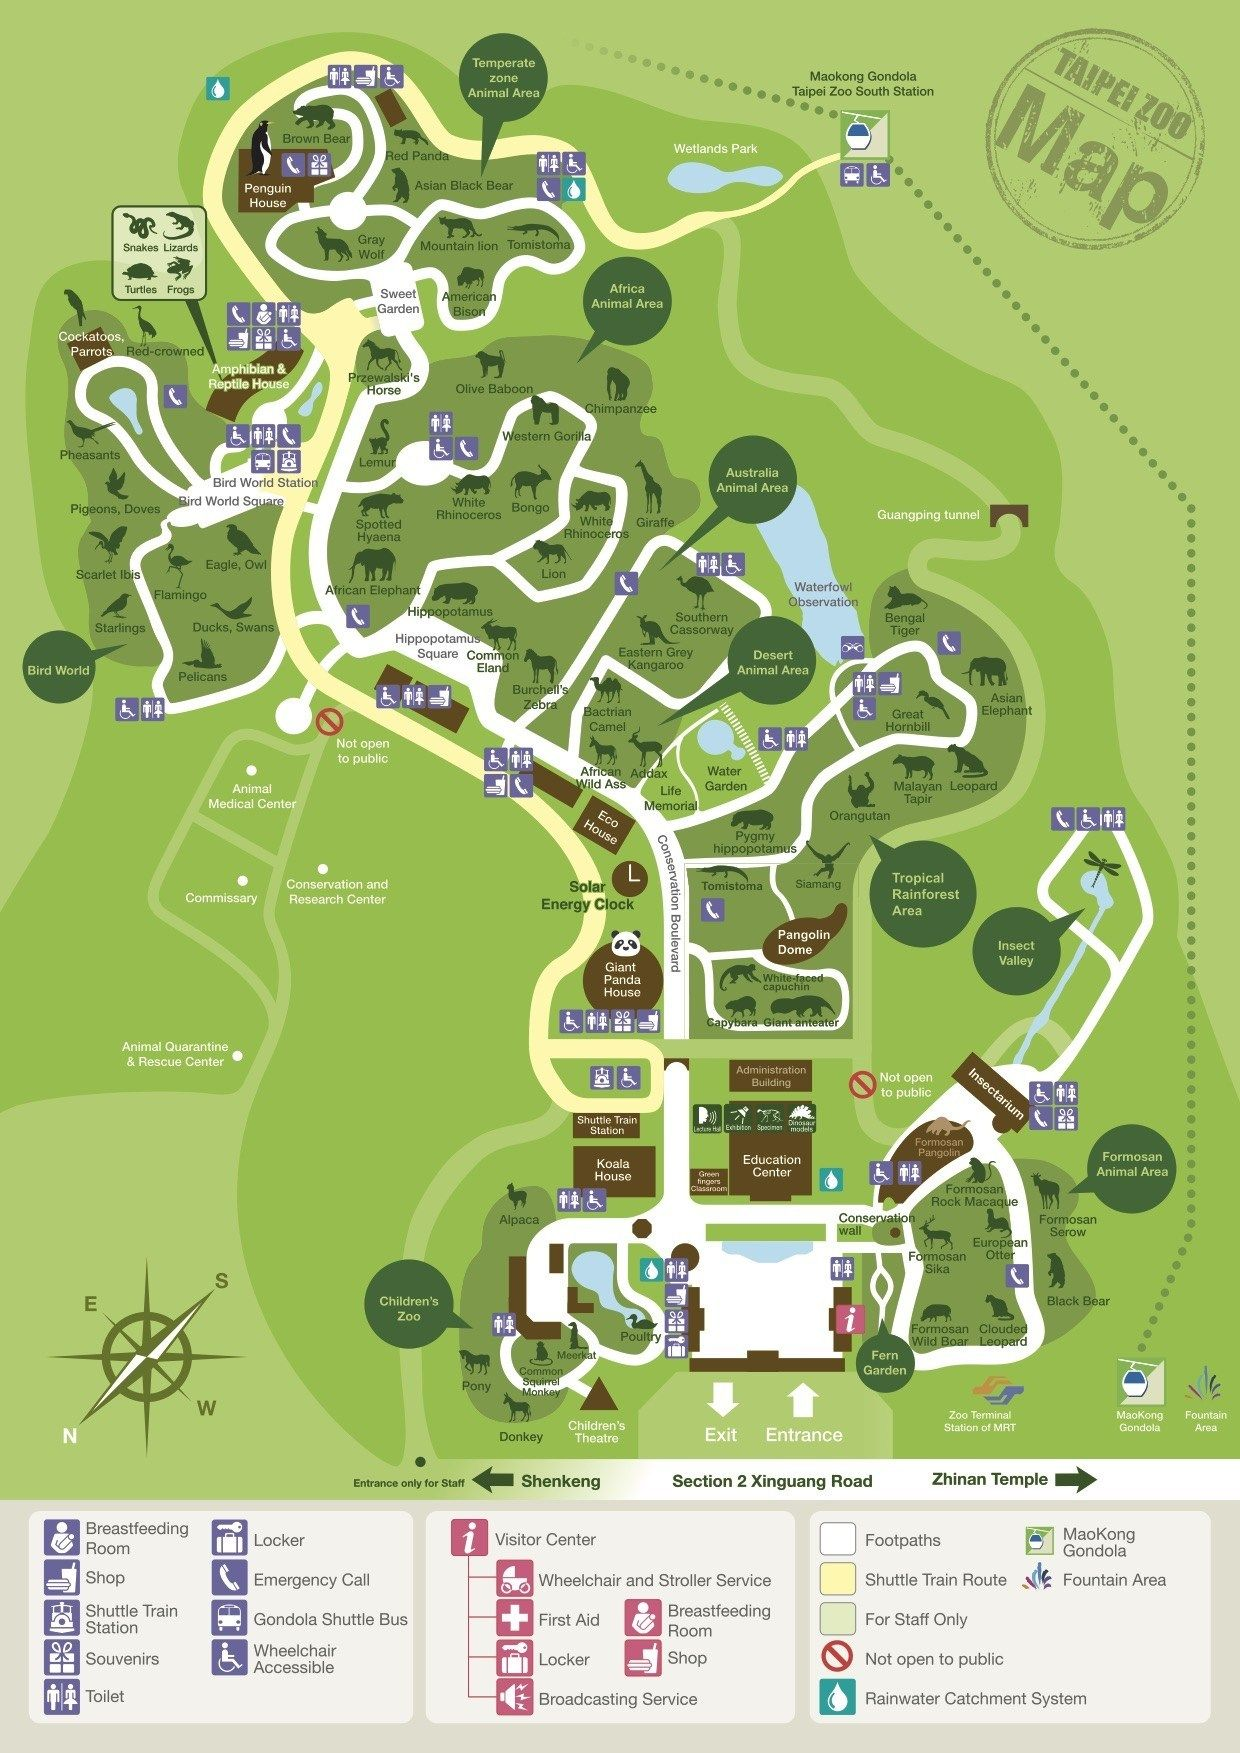 Map Of Taipei Zoo In 2020 Zoo Signage Zoo Map Zoo Architecture